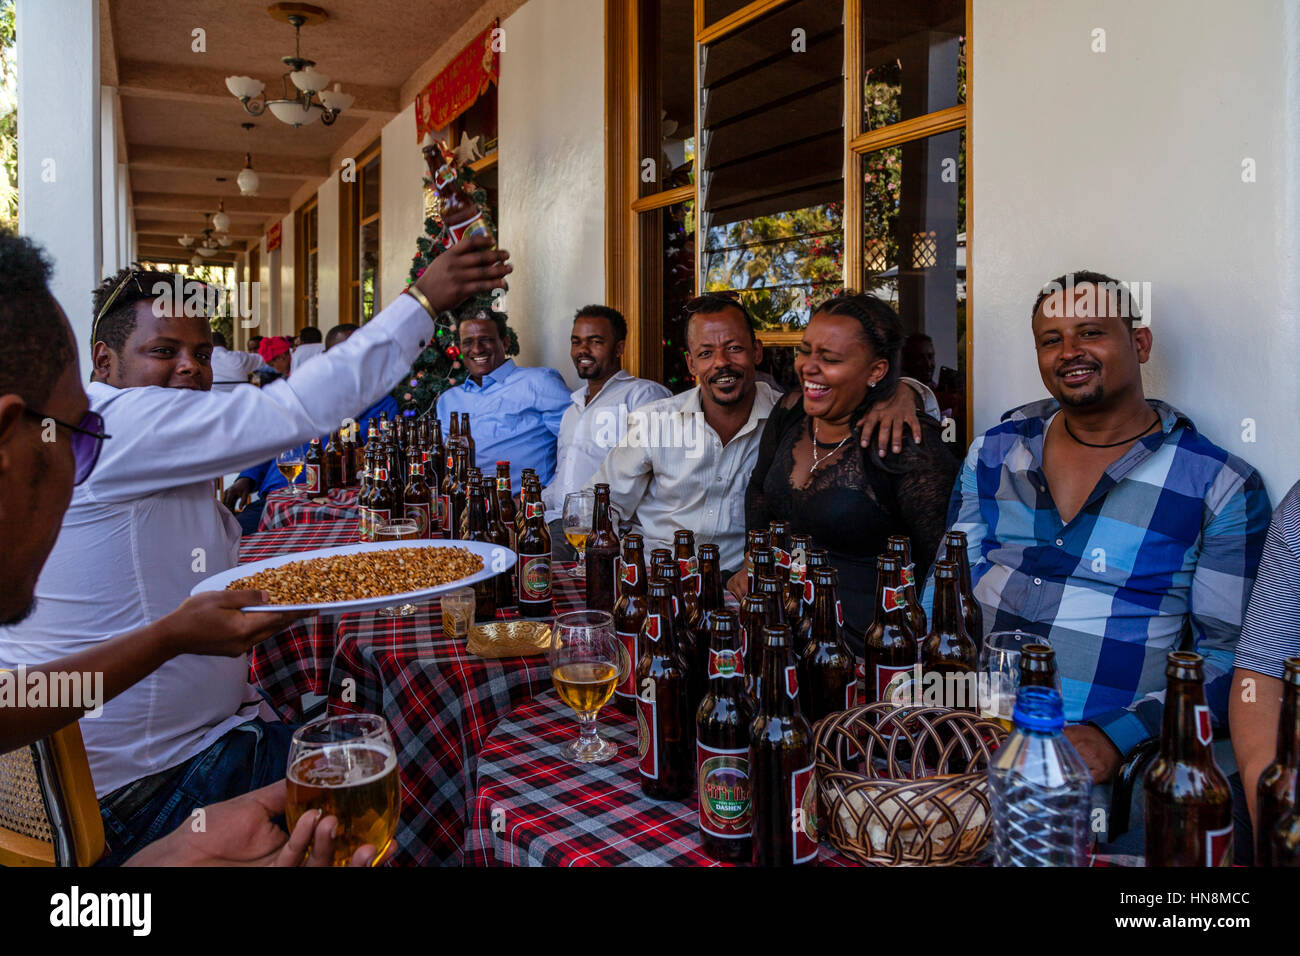 A Wedding Party, Guests At A Wedding Drinking Beer, Lake Ziway, Ziway, Ethiopia - Stock Image